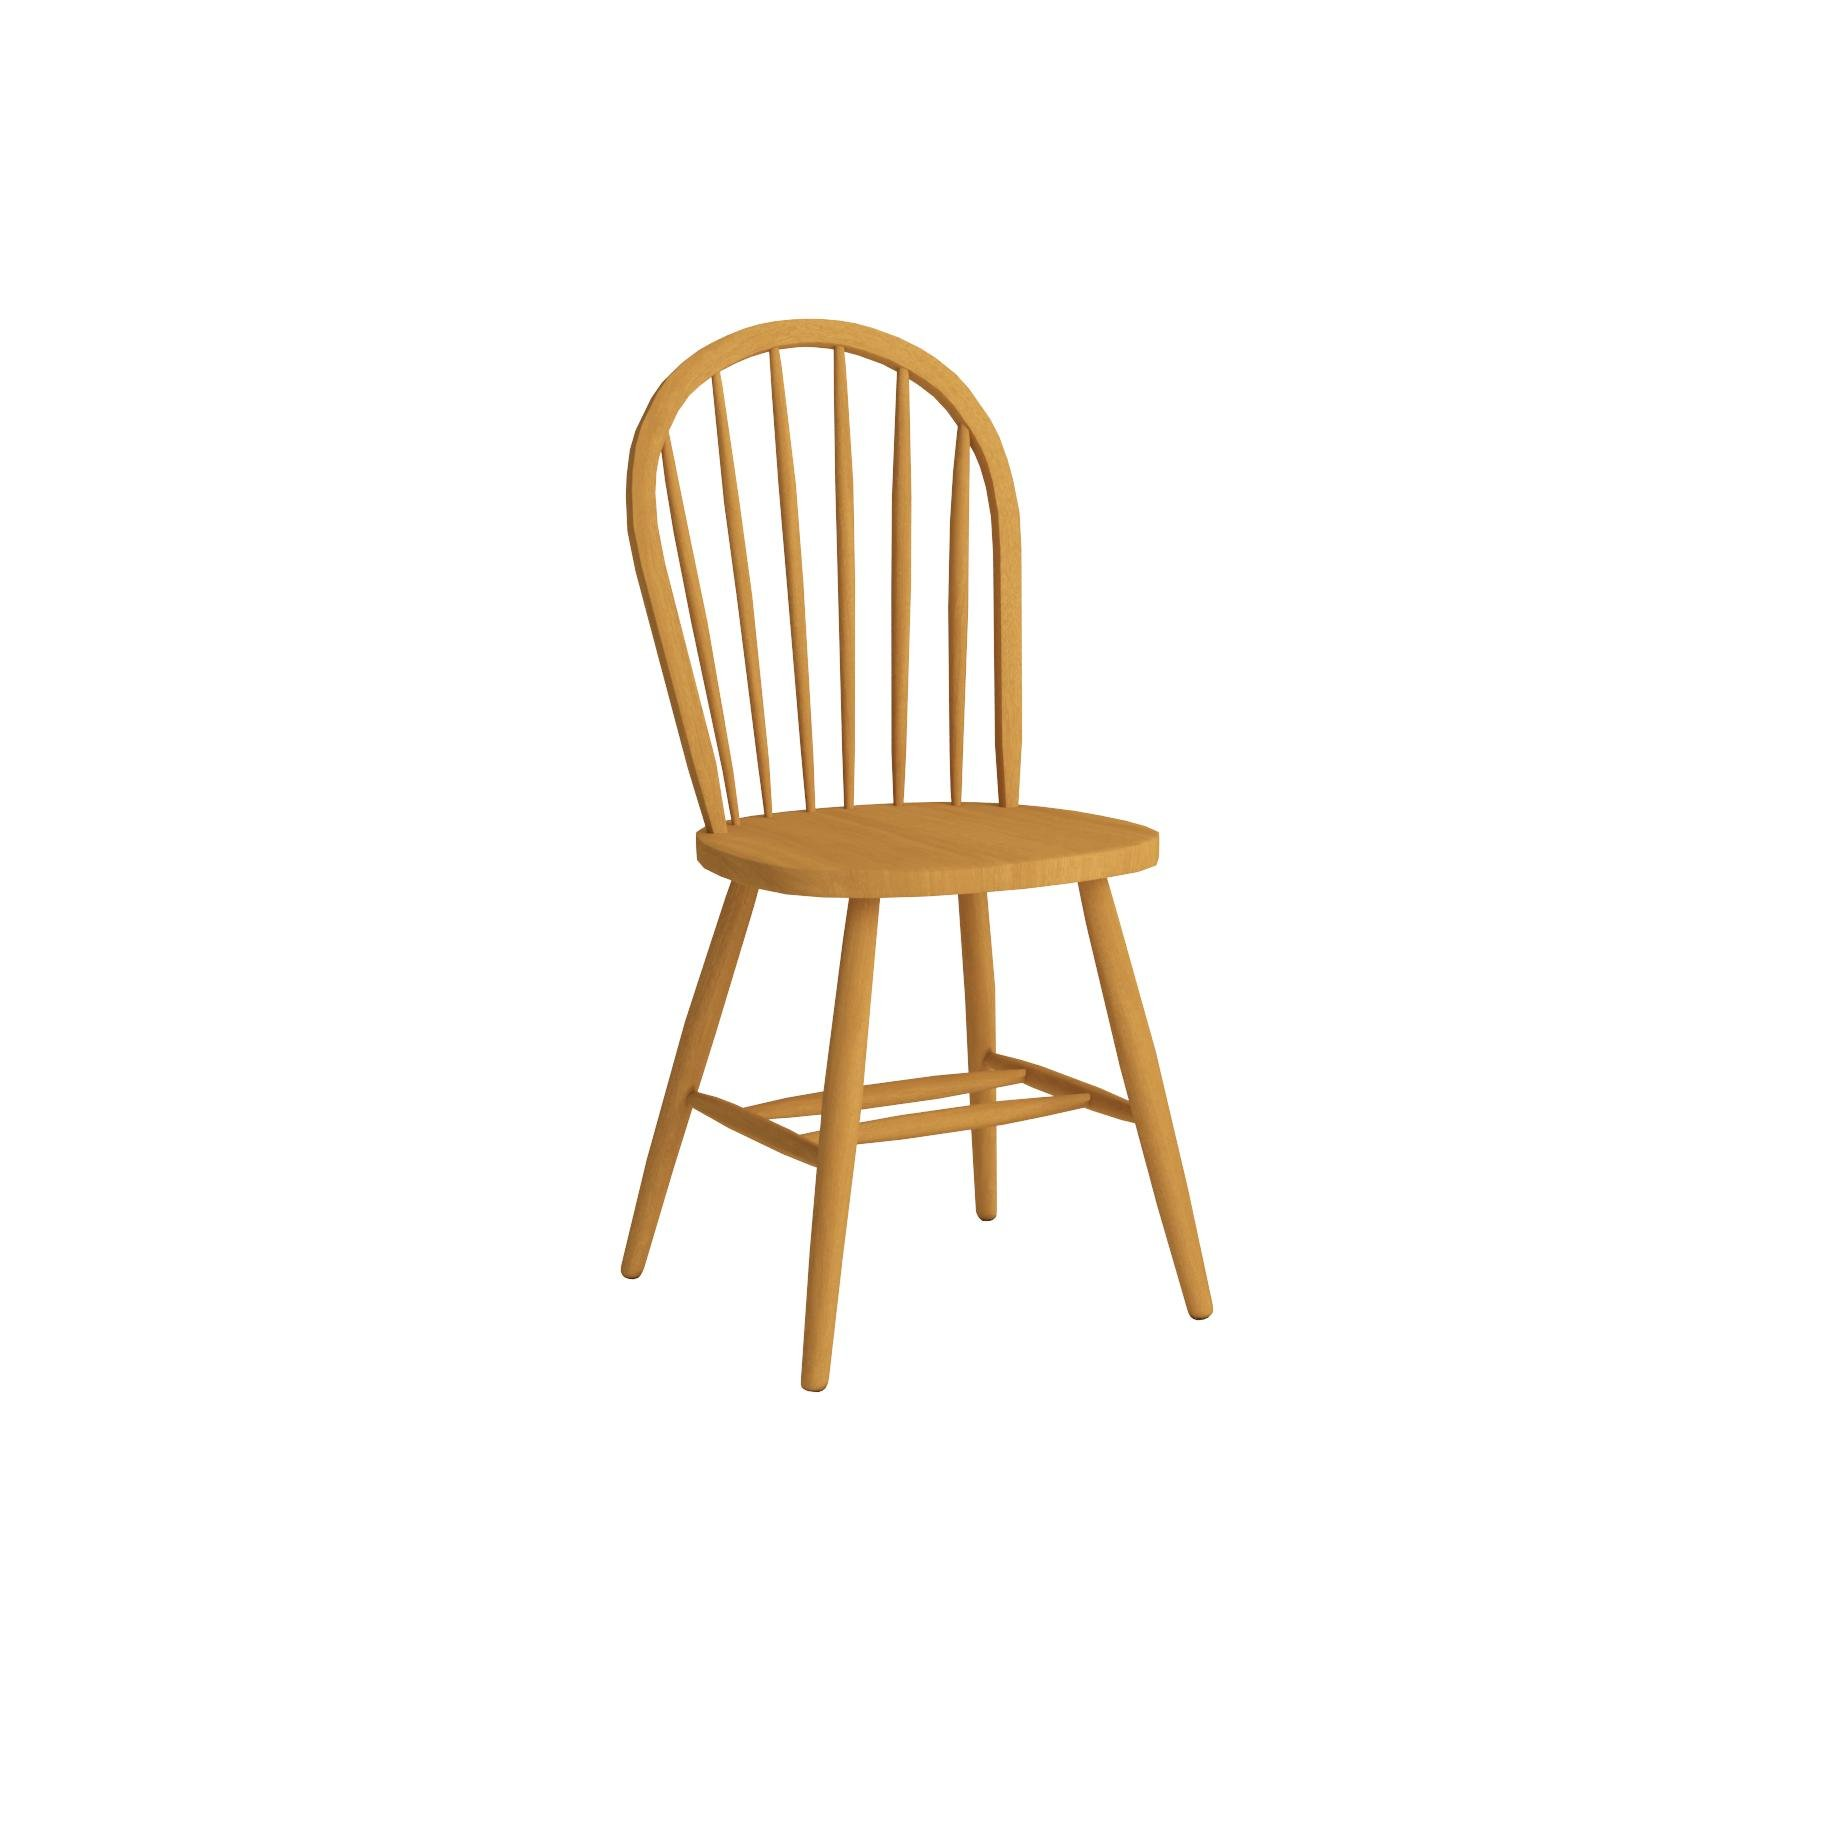 Winsome Wood Windsor Chair, Natural, Set of 2 by Winsome Wood